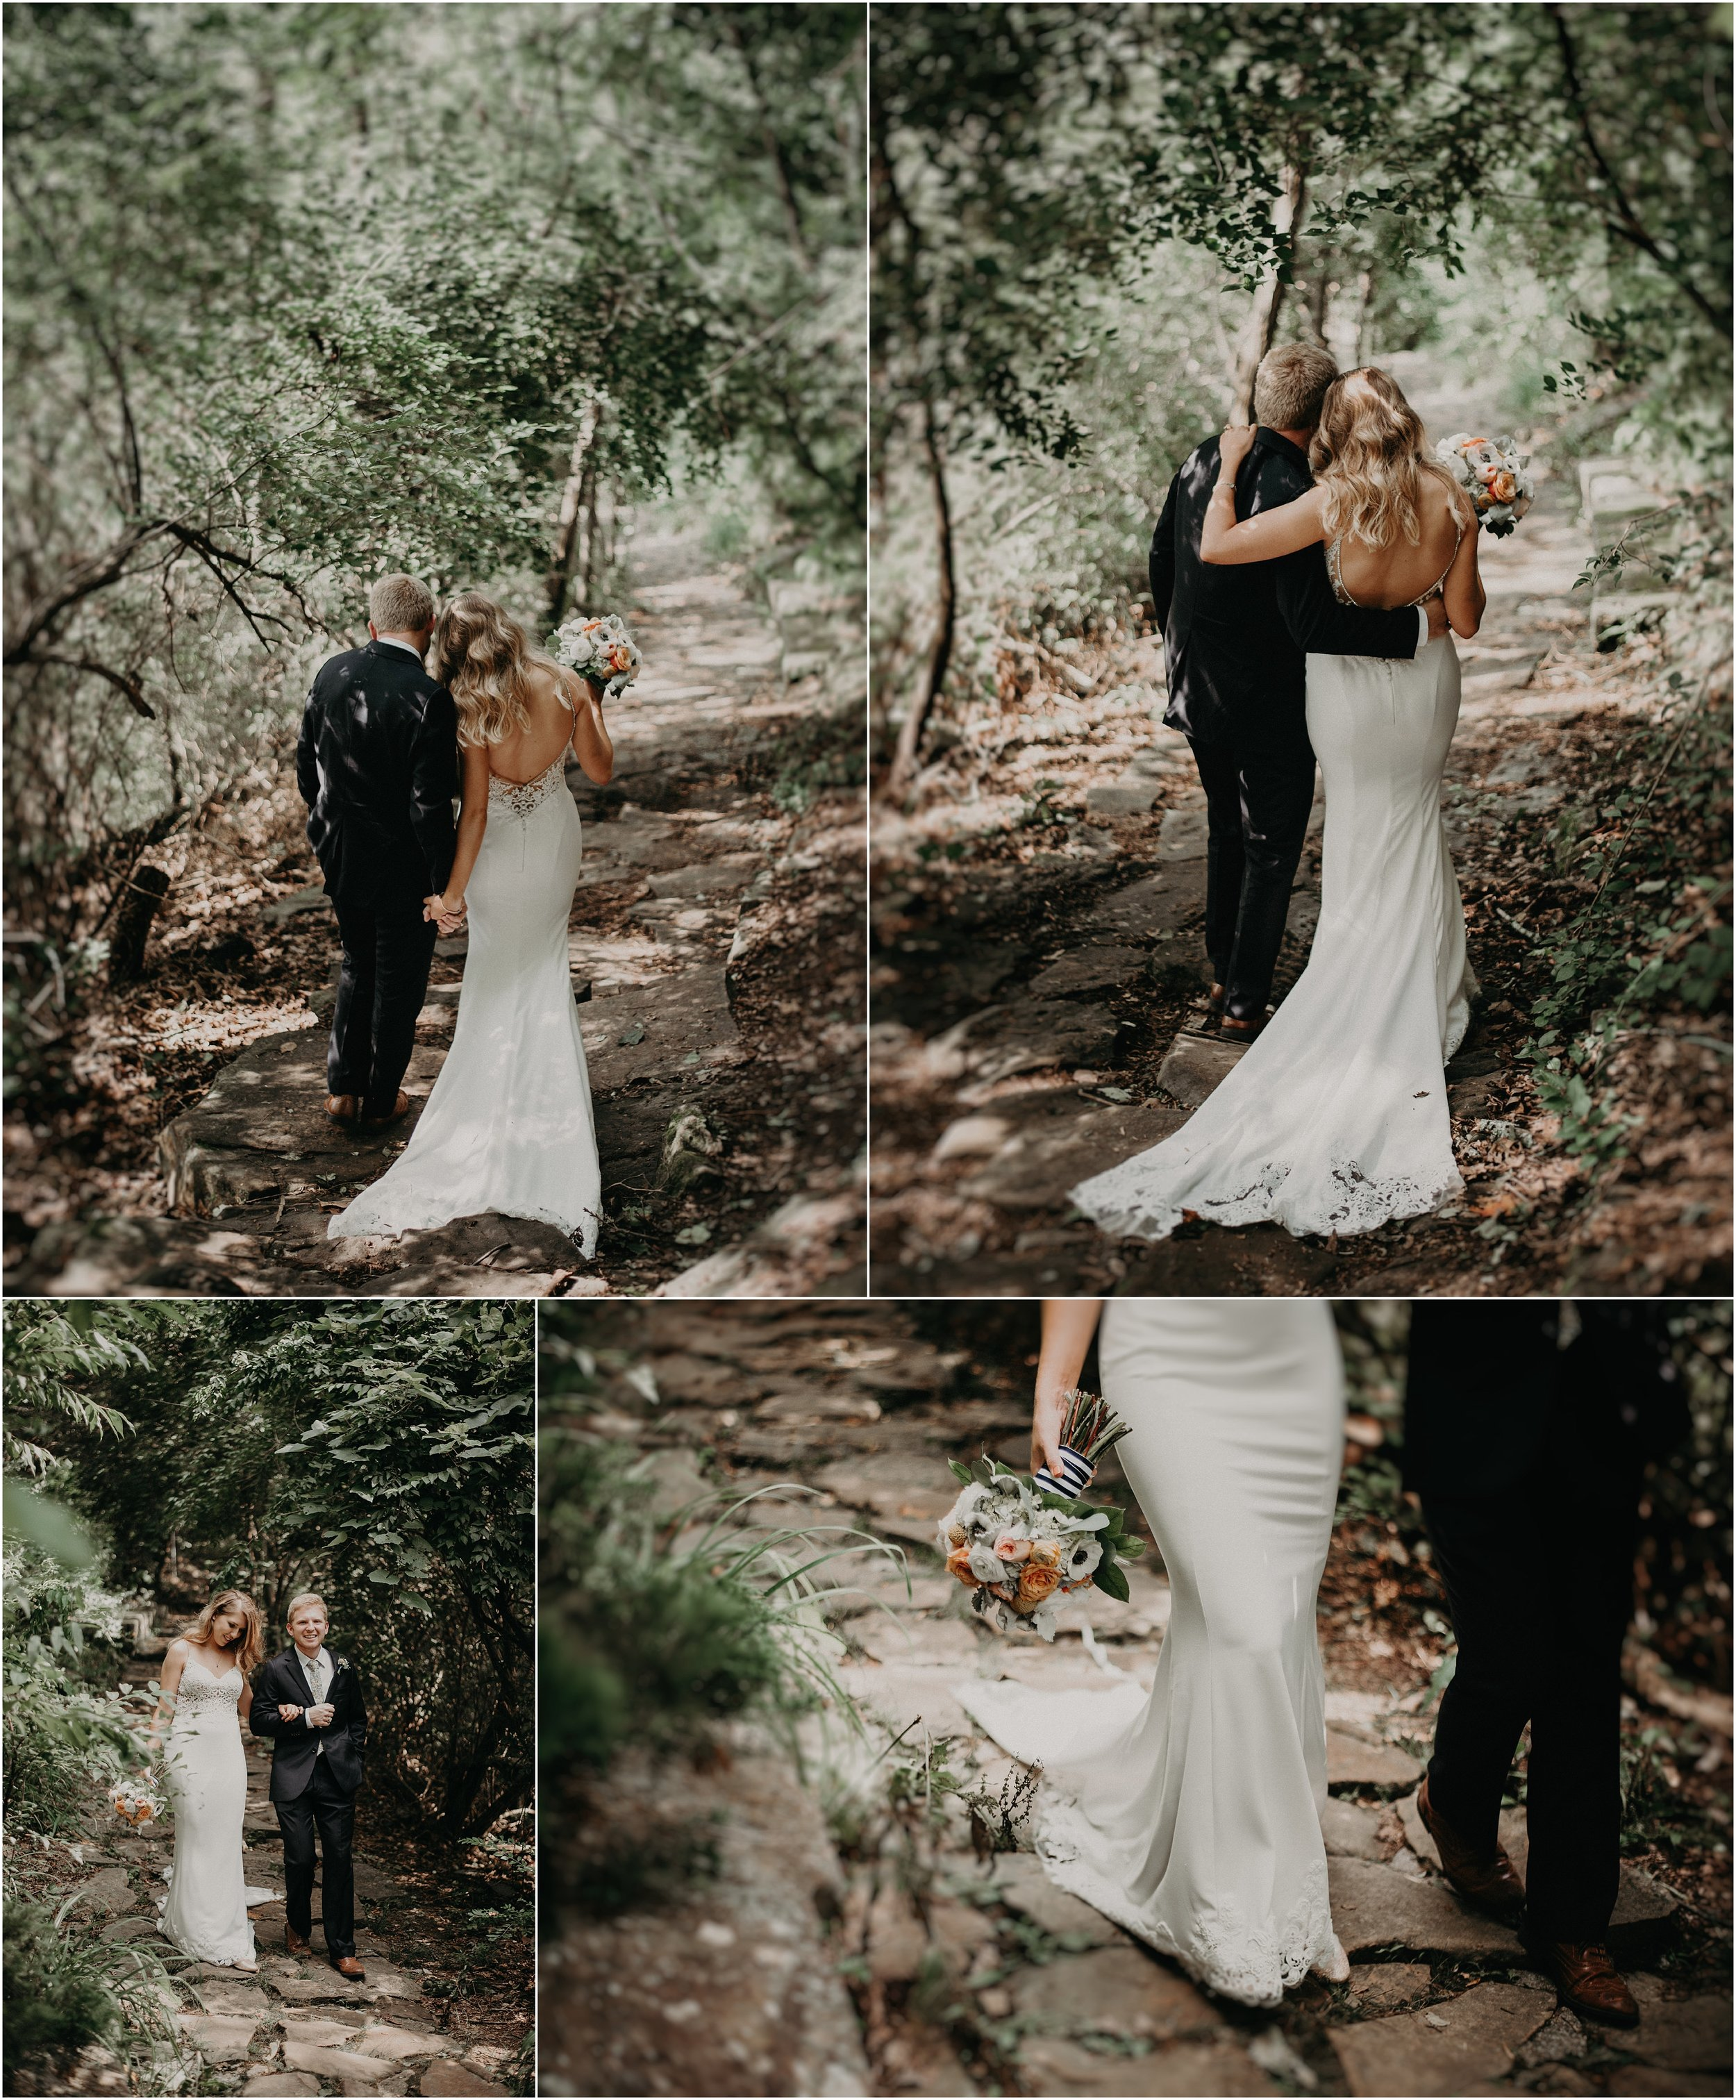 The bride and groom walk the trails to Sunset Rock in Chattanooga, Tennessee